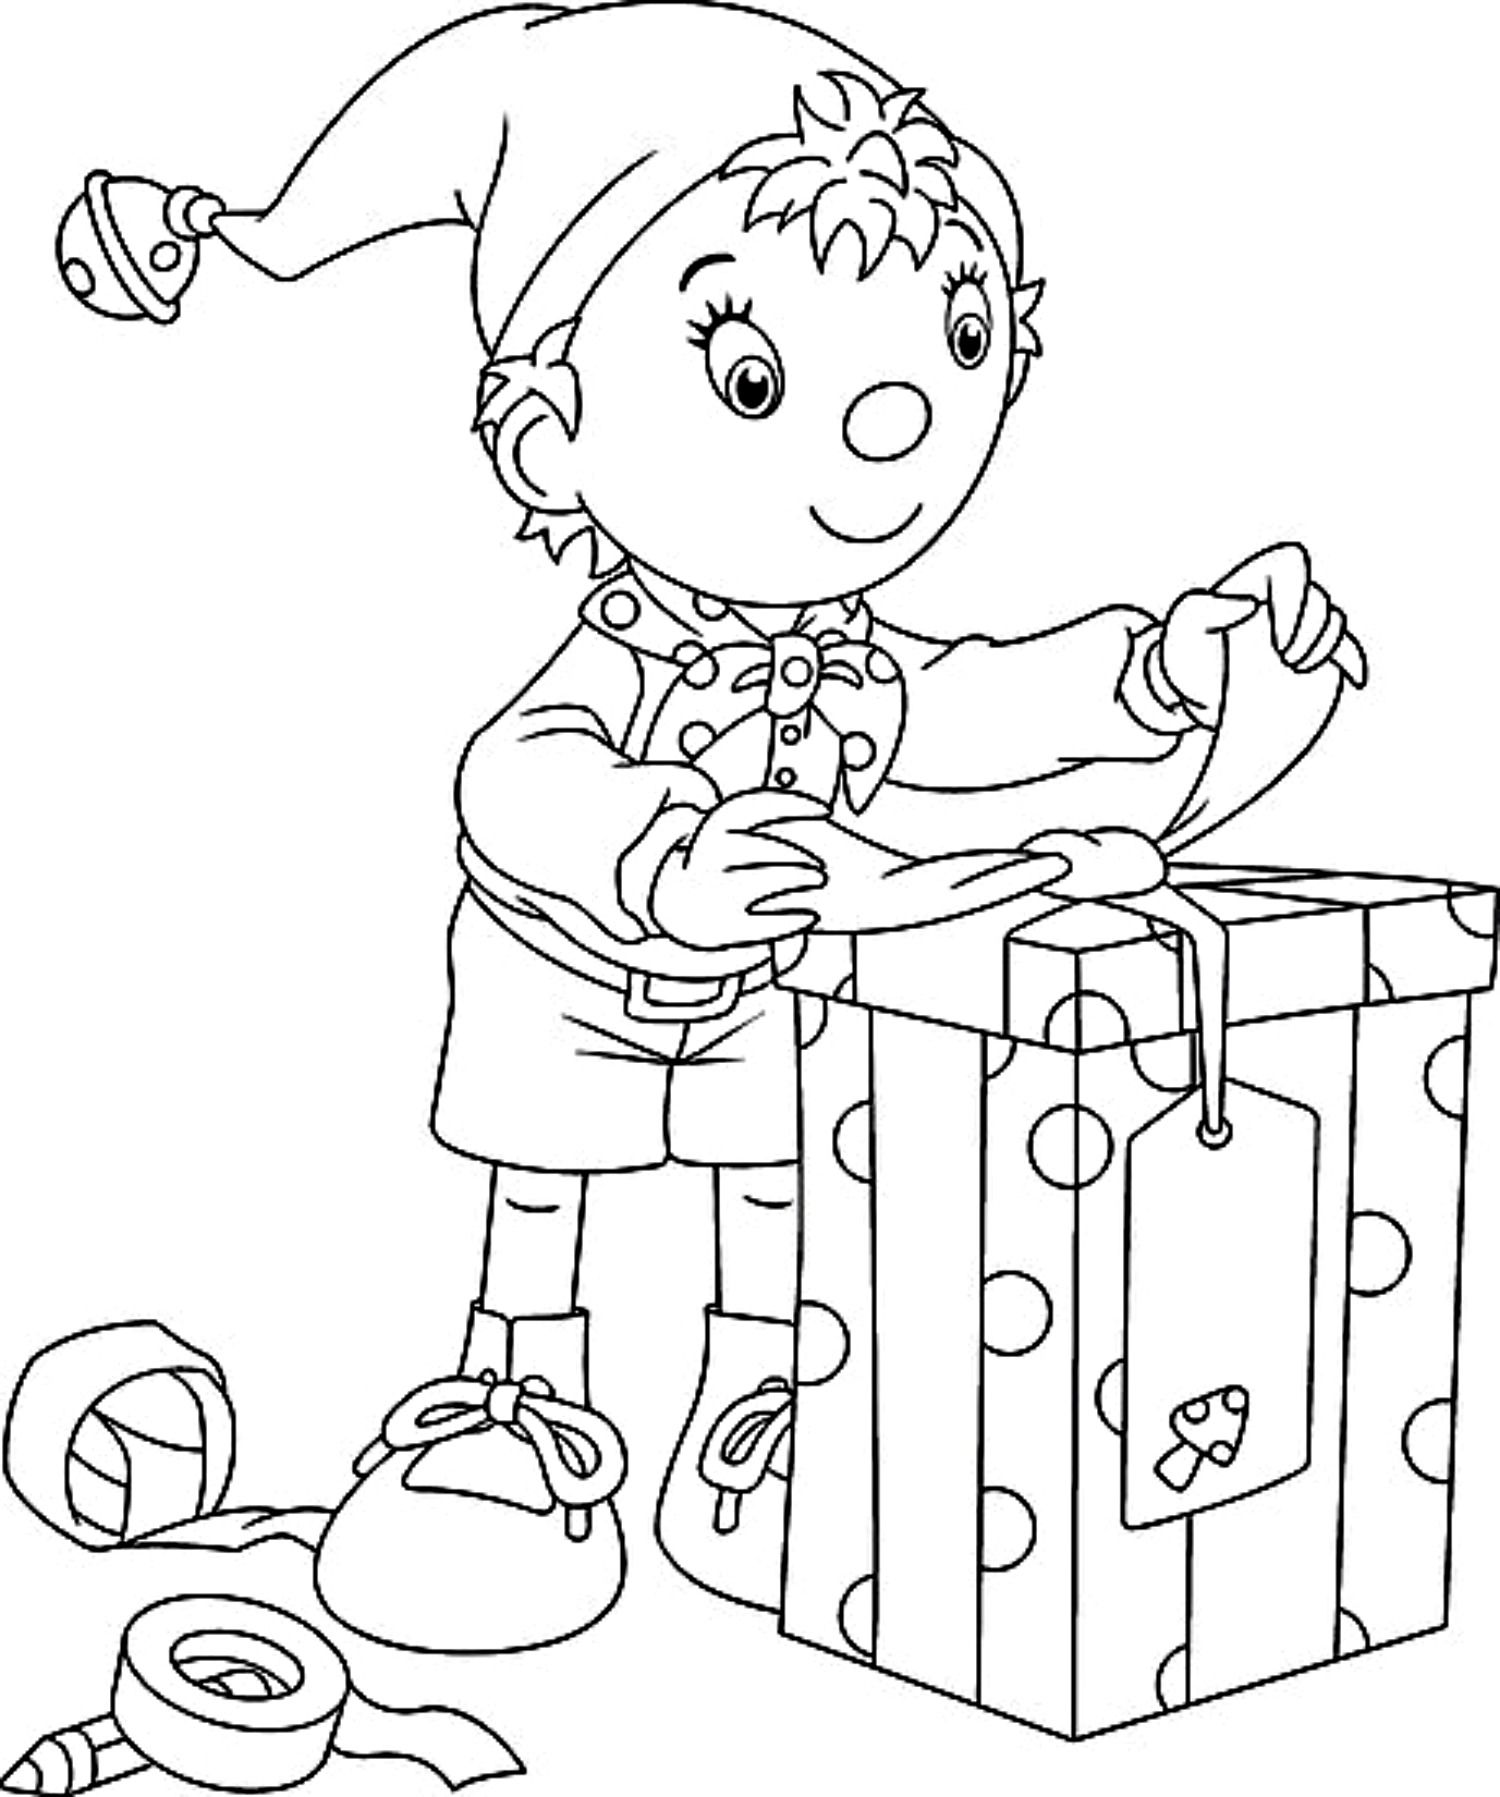 Christmas Coloring Page Santa Song And Free Printable Christmas Elf